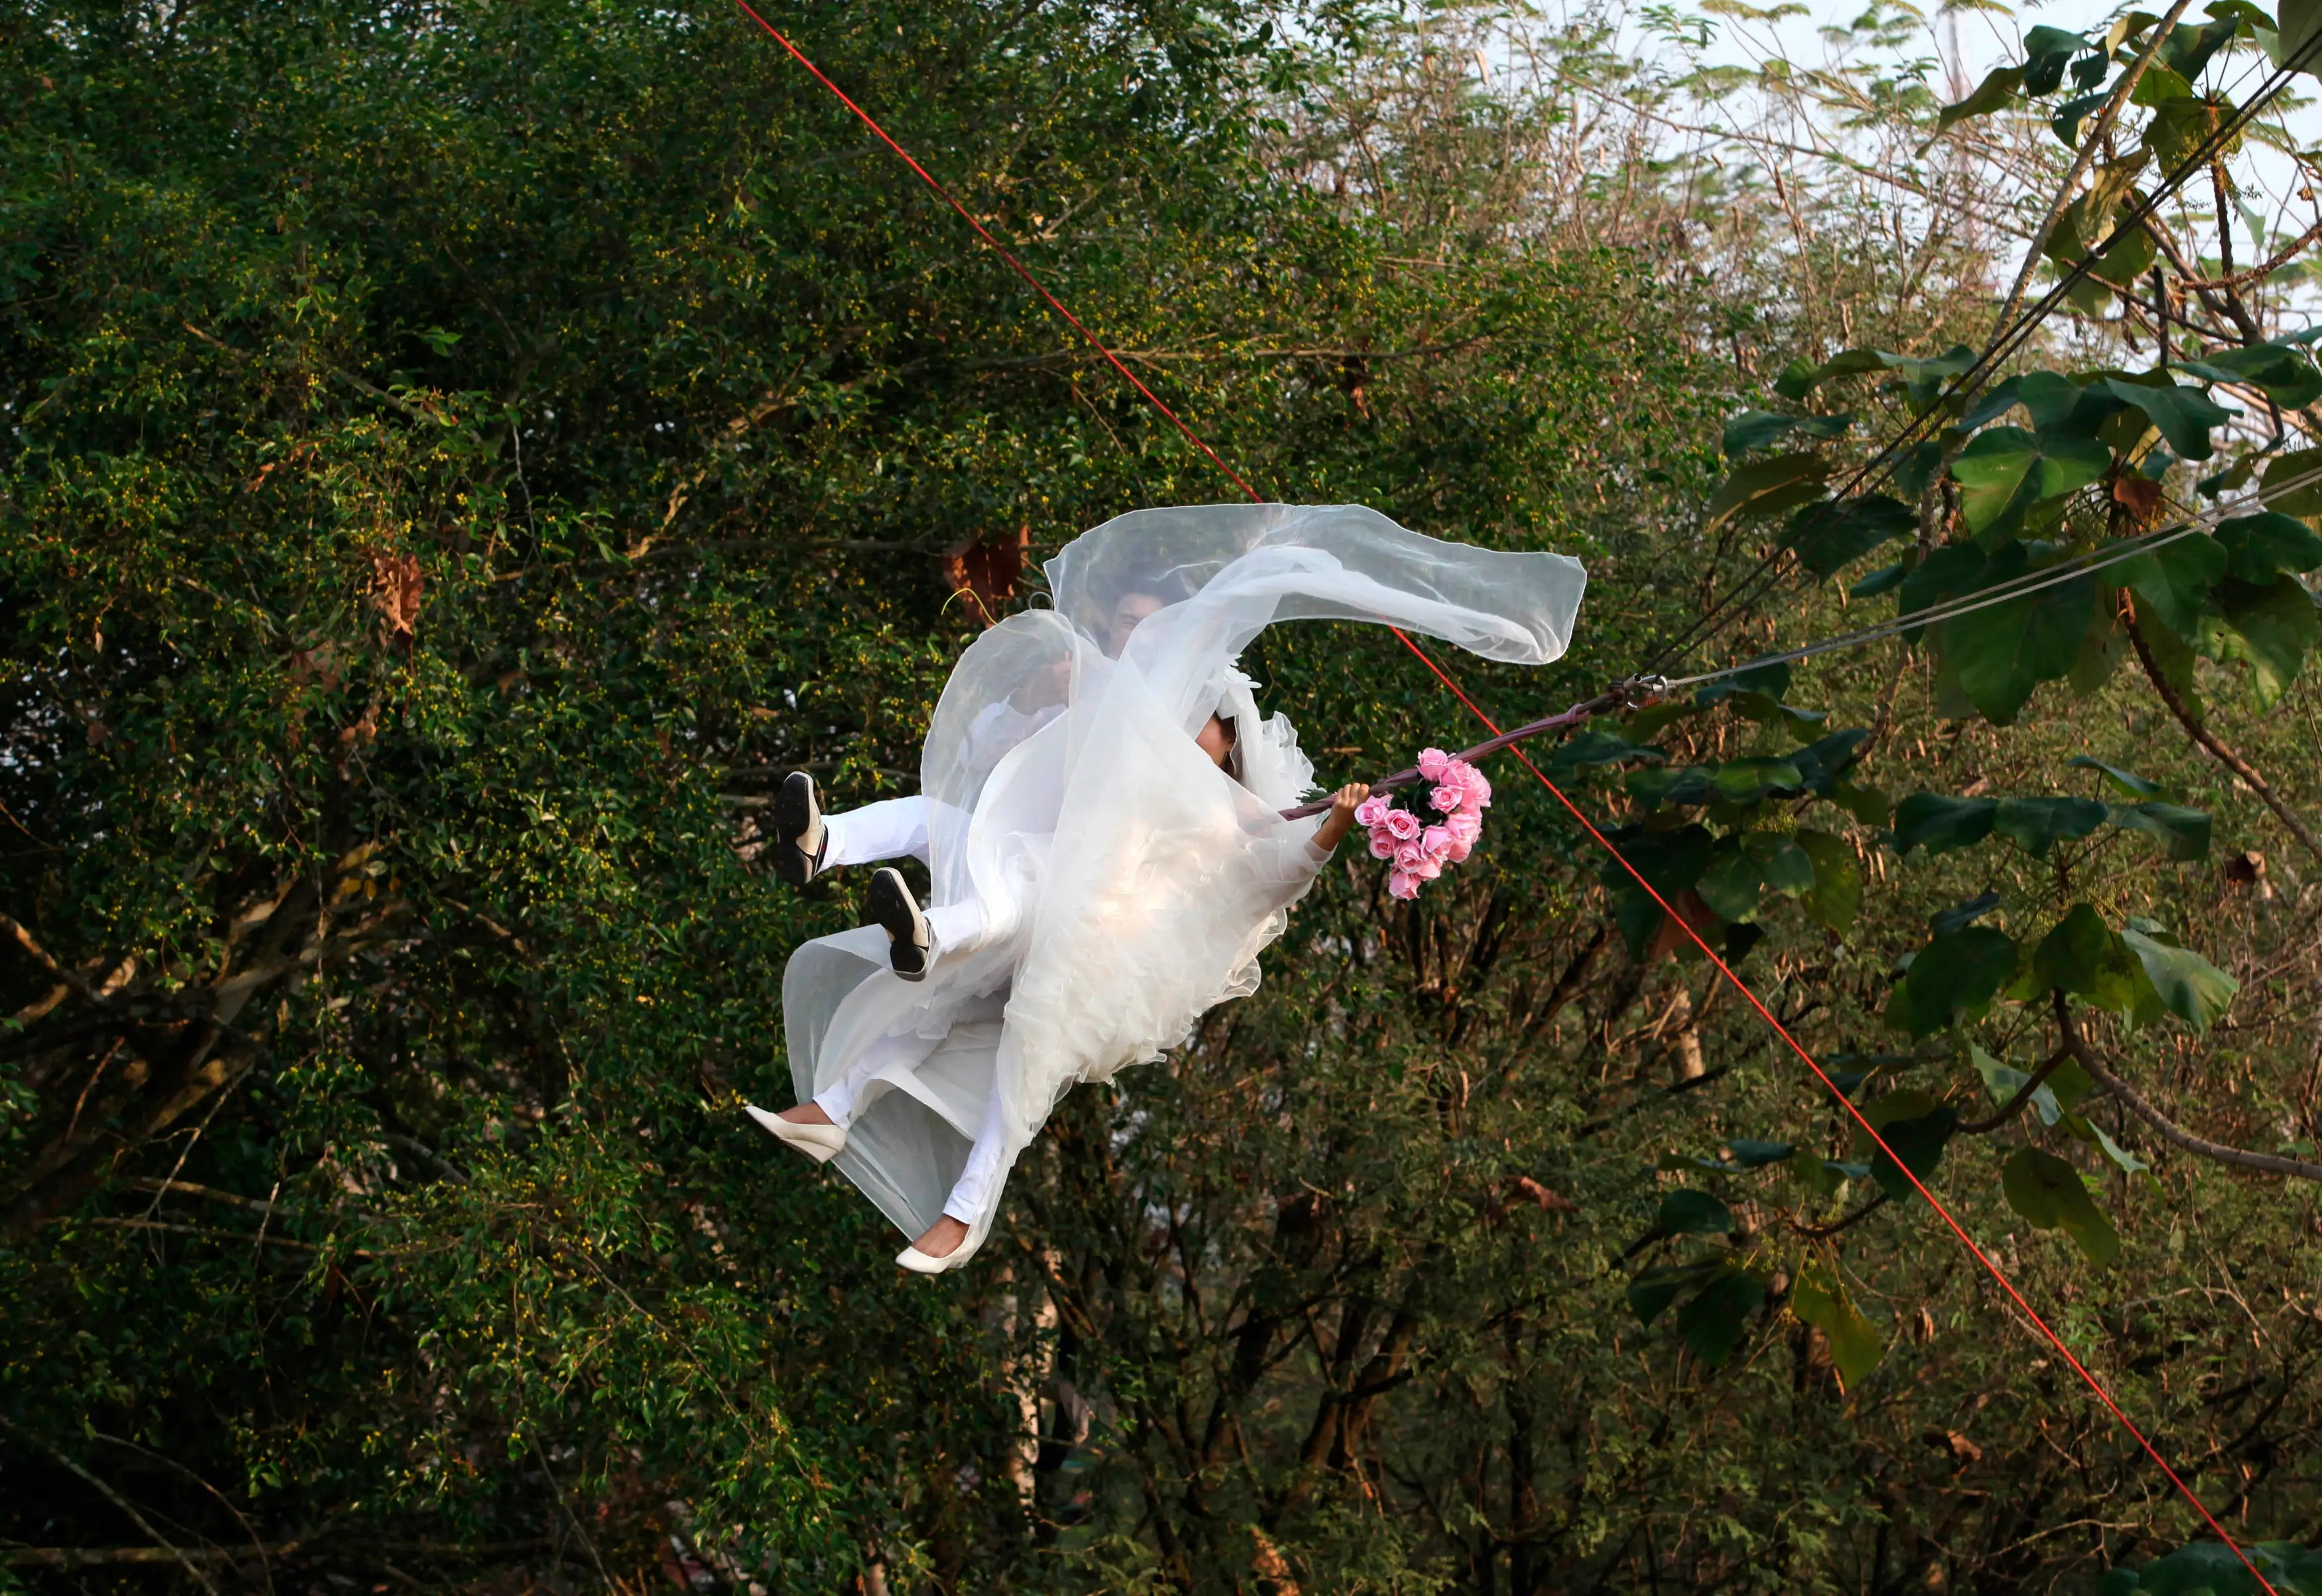 Prasit Rangsiyawong and his bride Varuttaon Rangsiyawong fly while attached to cables during a wedding ceremony in Prachin Buri province, east of Bangkok, Thailand.